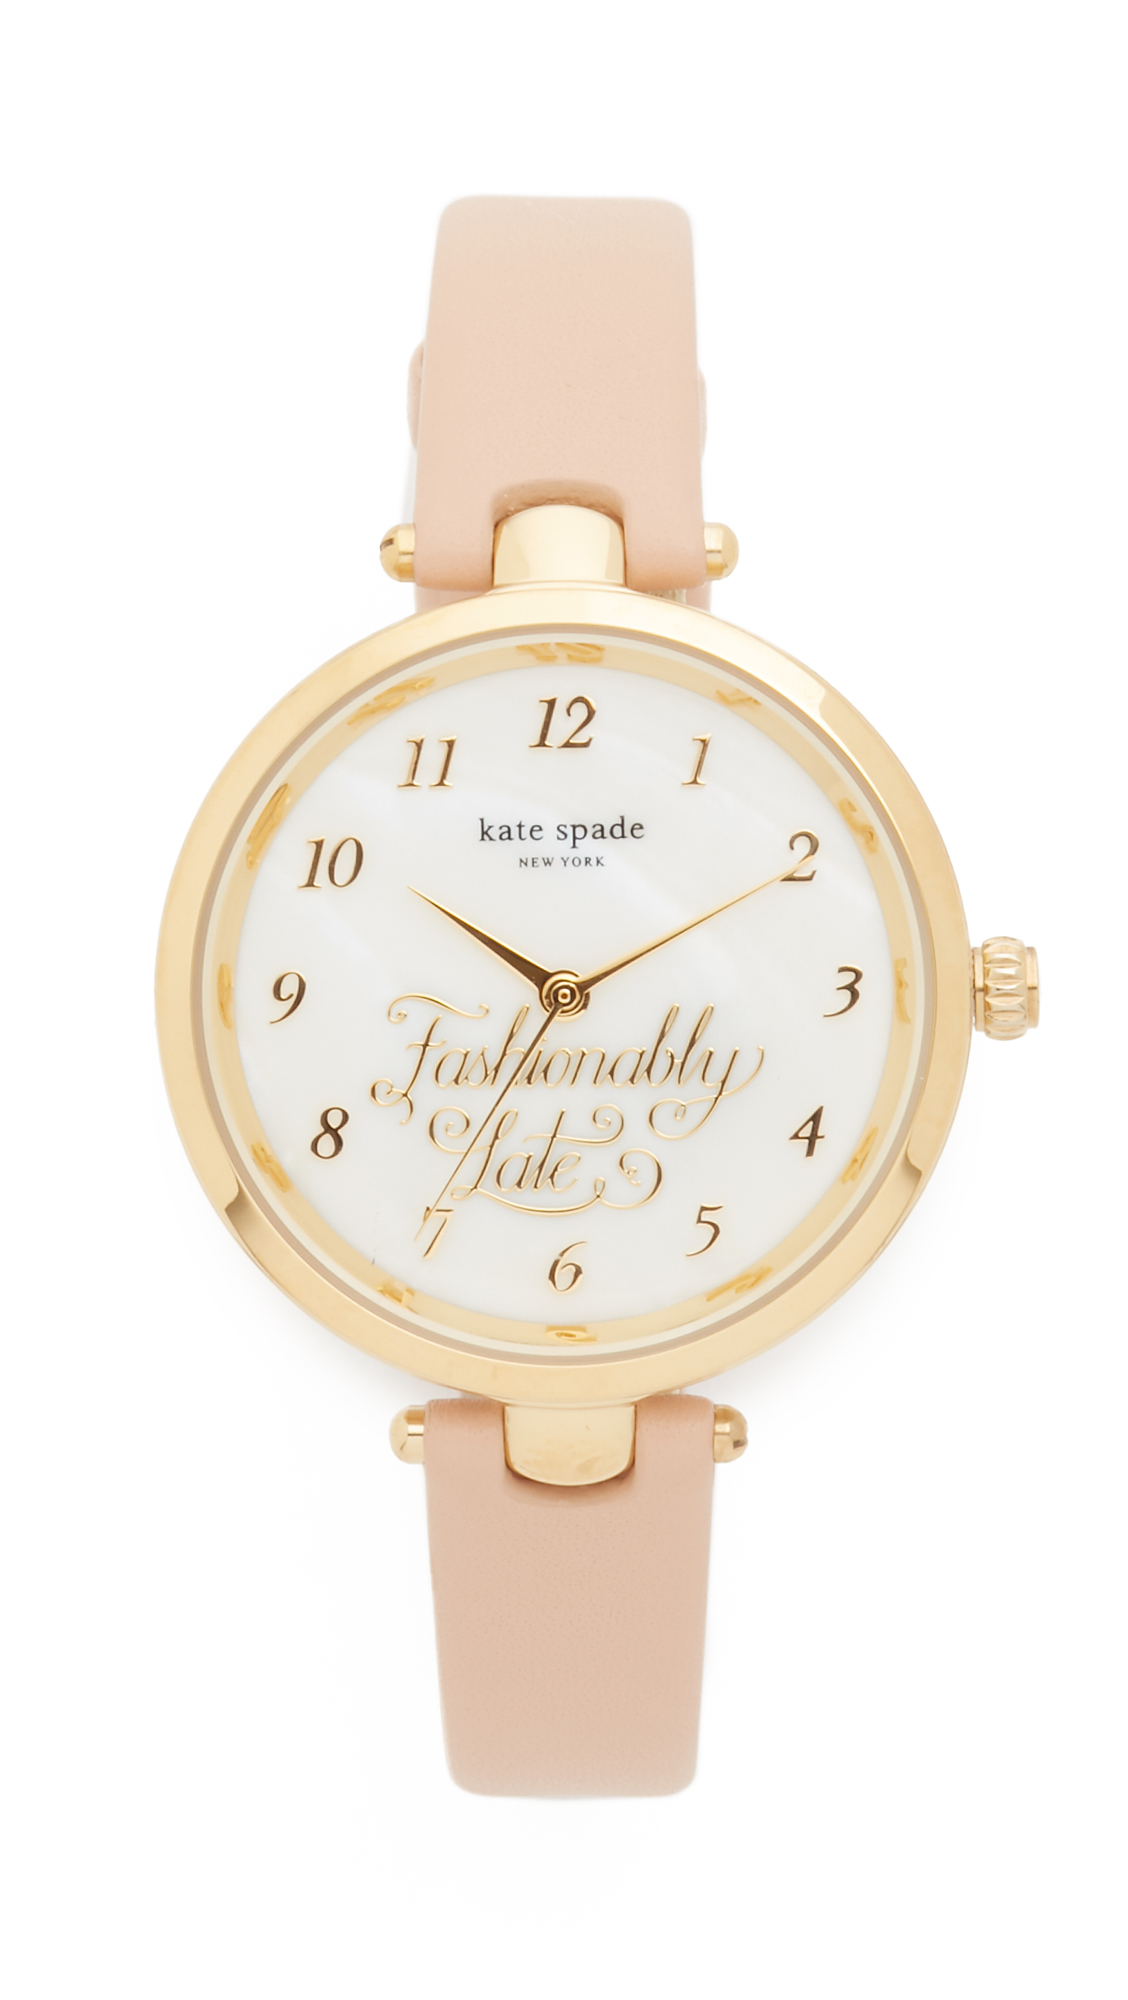 Kate Spade New York Holland Fashionably Late Watch - Pink/Gold at Shopbop